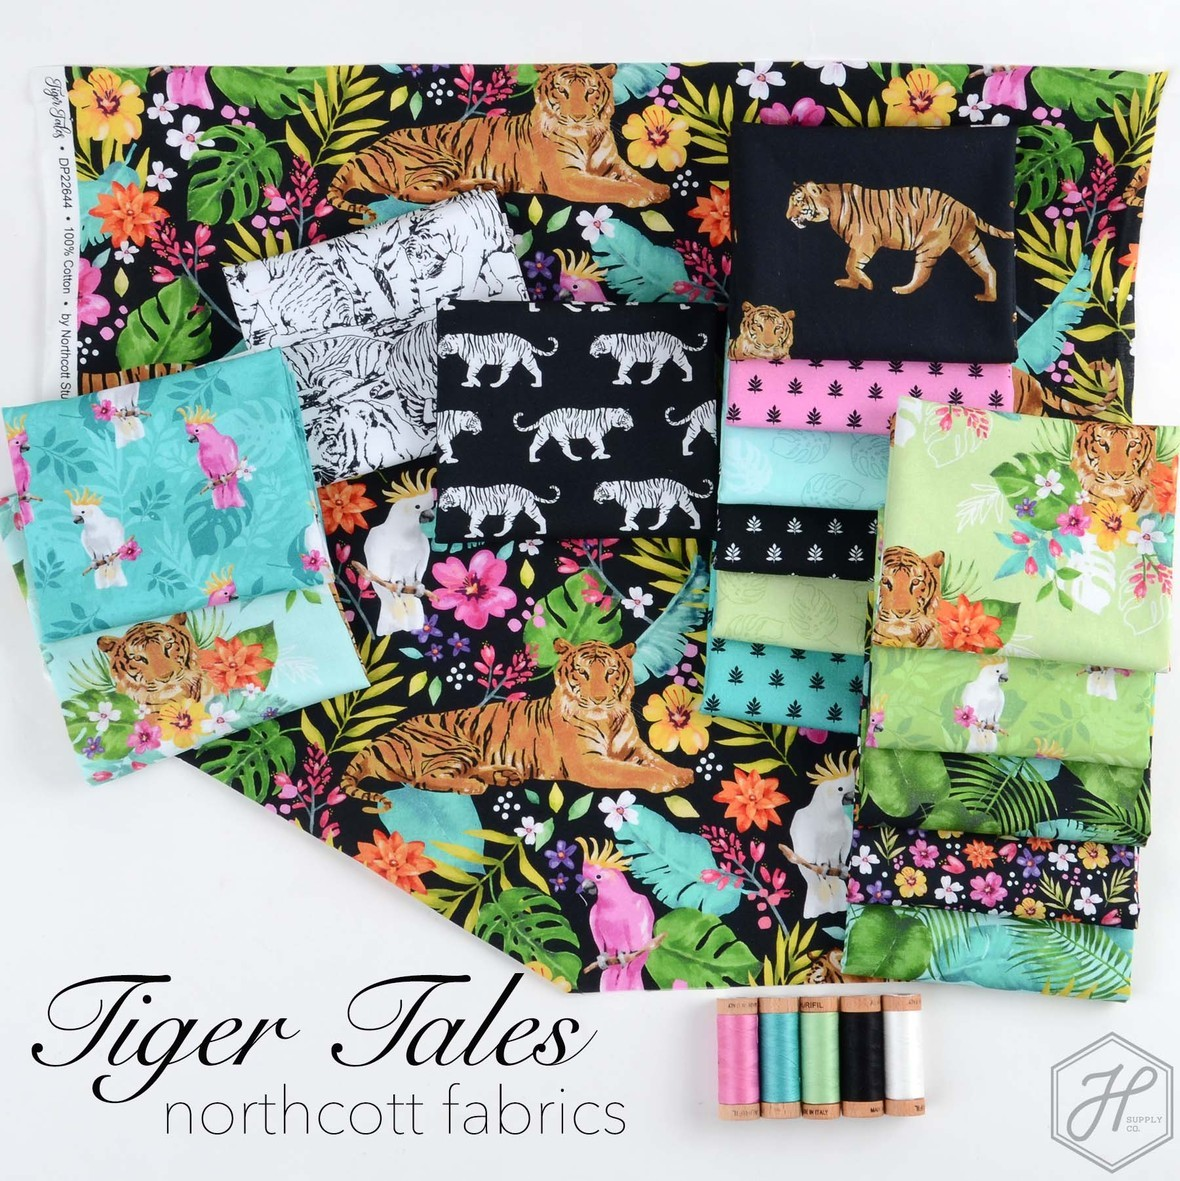 Tiger Tales Fabric from Northcortt at Hawthorne Supply Co